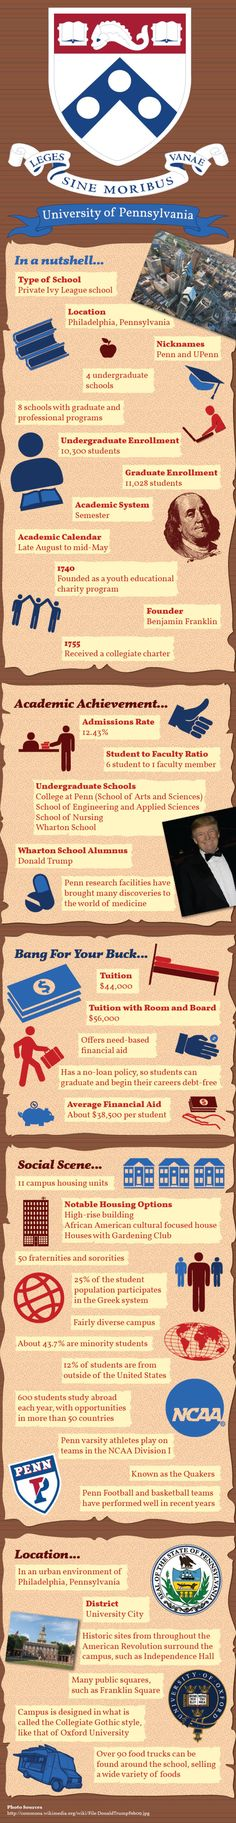 University of Pennsylvania Upenn Infographic